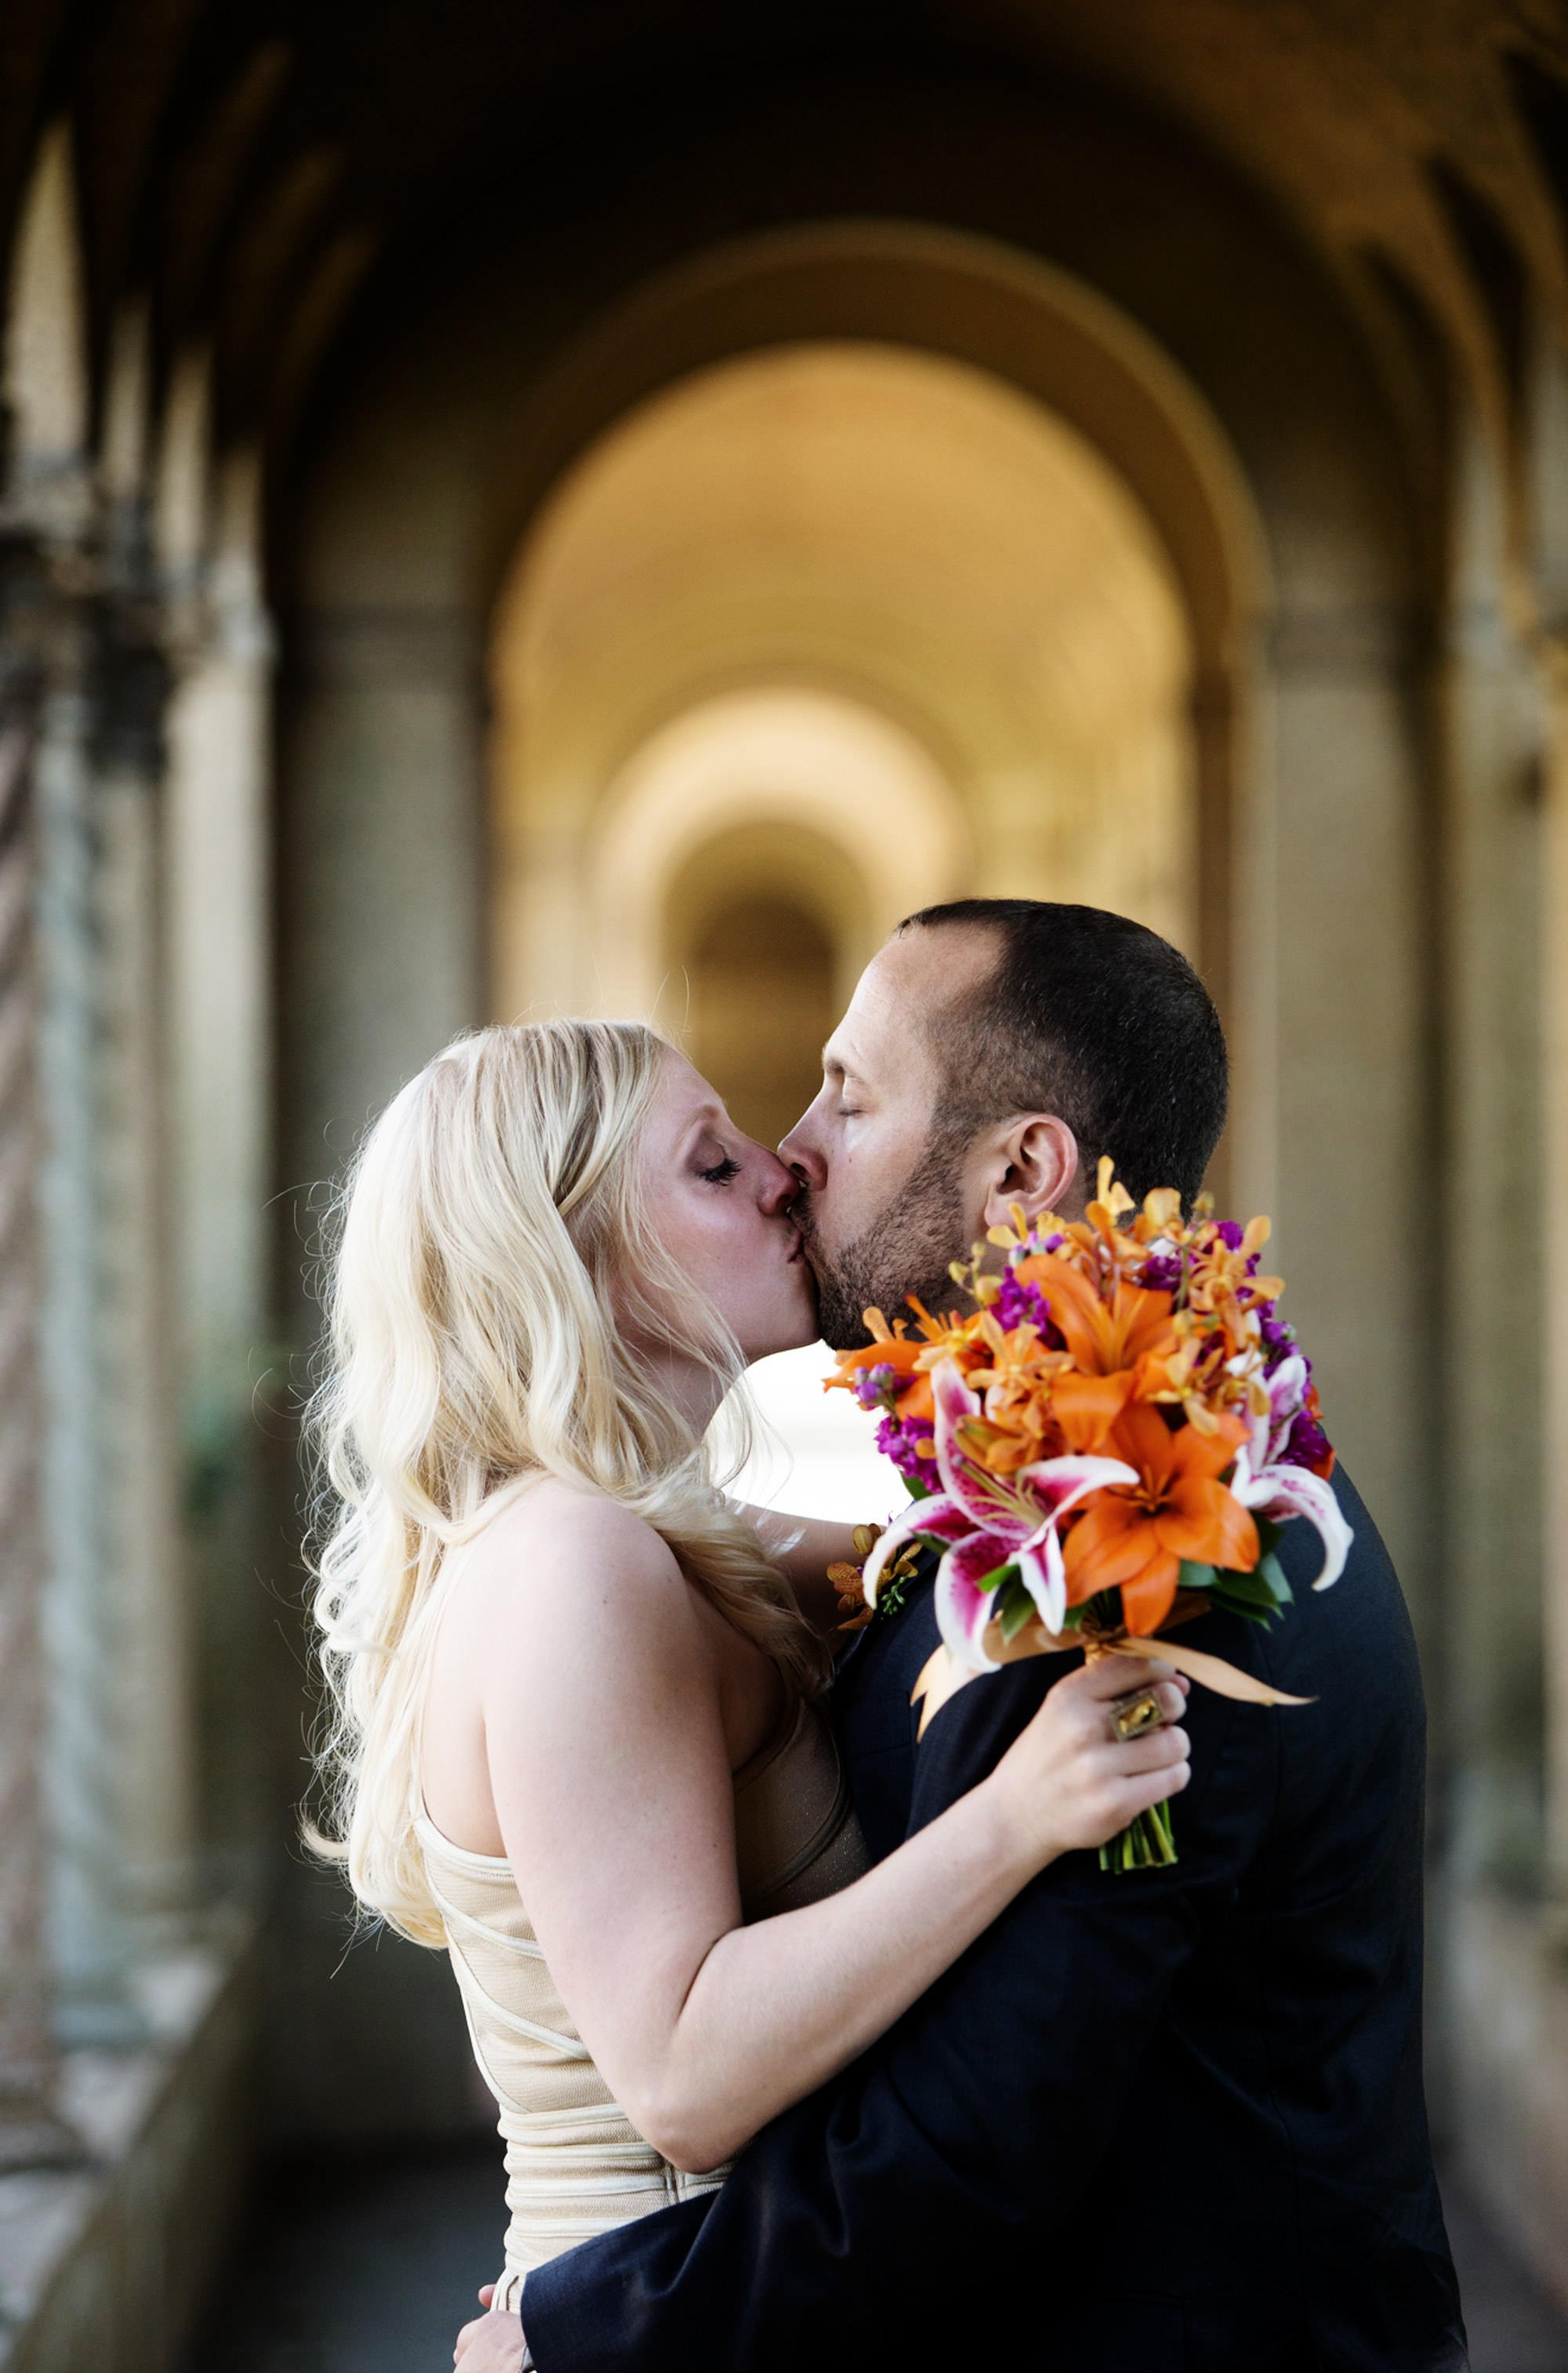 The couple kisses before their wedding at St Francis Hall.